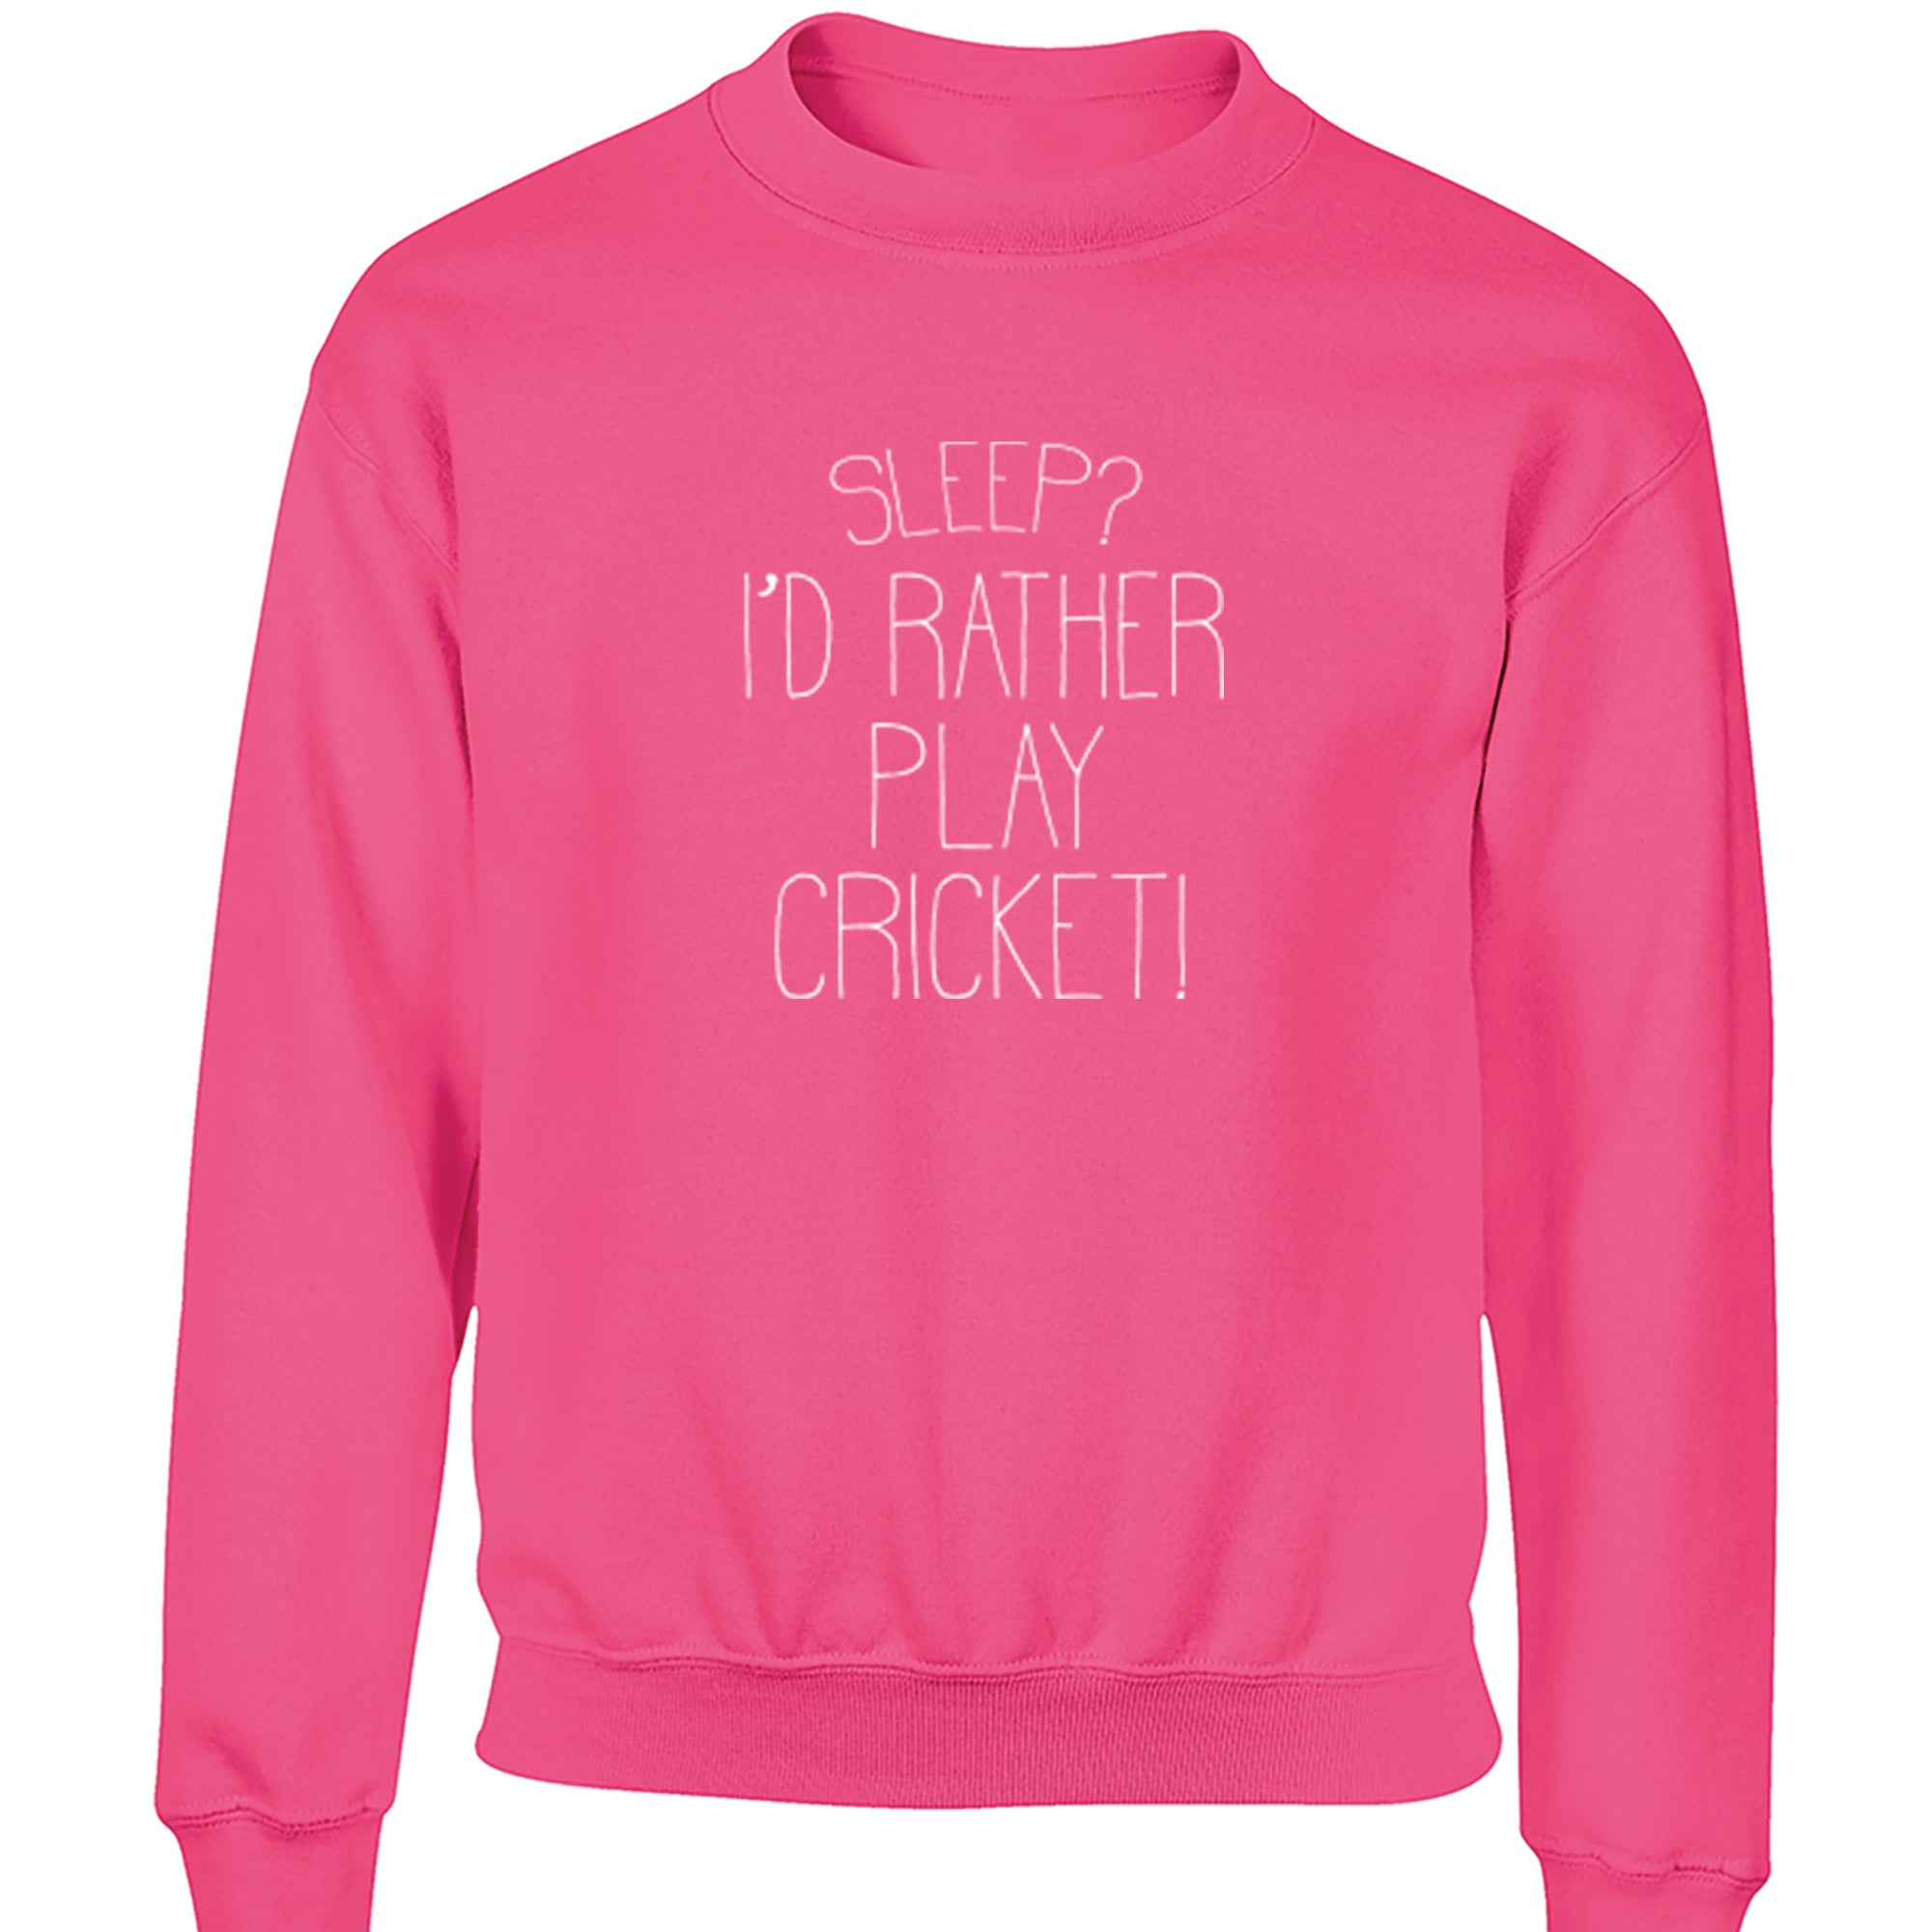 Sleep? I'd Rather Play Cricket! Childrens Ages 3/4-12/14 Unisex Jumper S0473 - Illustrated Identity Ltd.